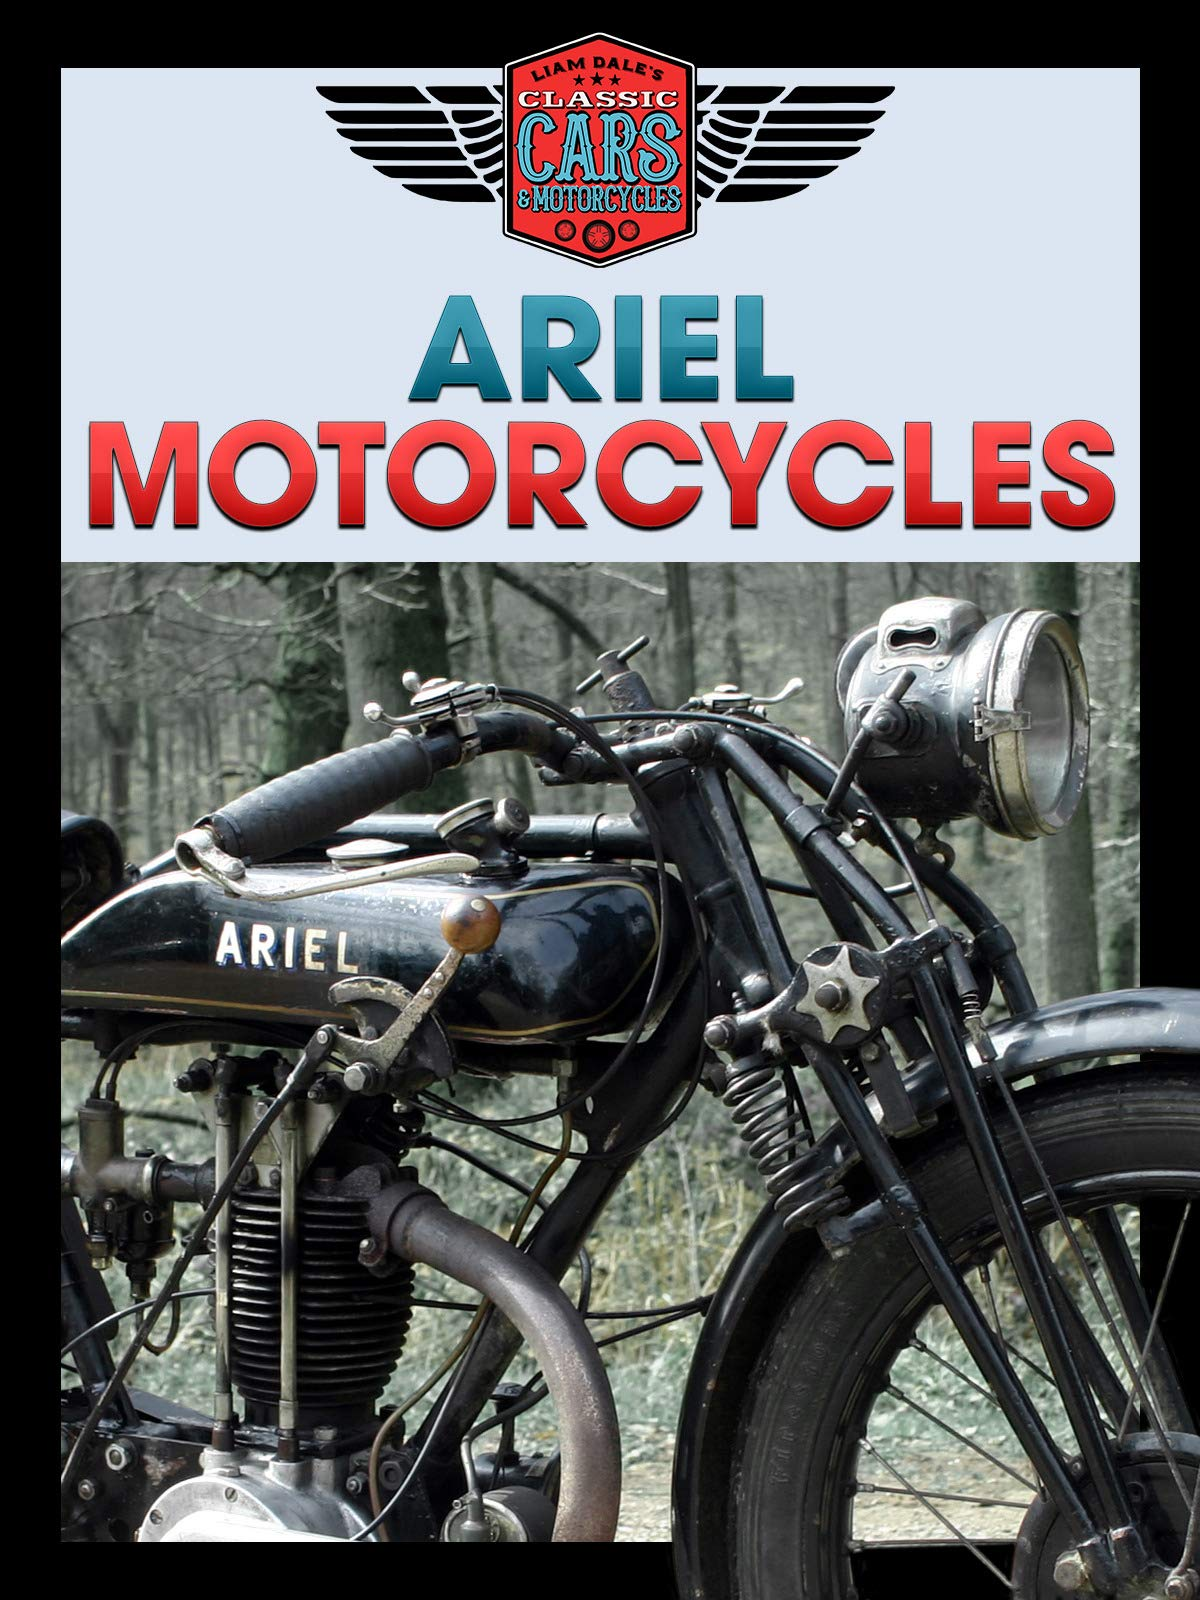 Ariel Motorcycles: Liam Dale's Classic Cars & Motorcycles